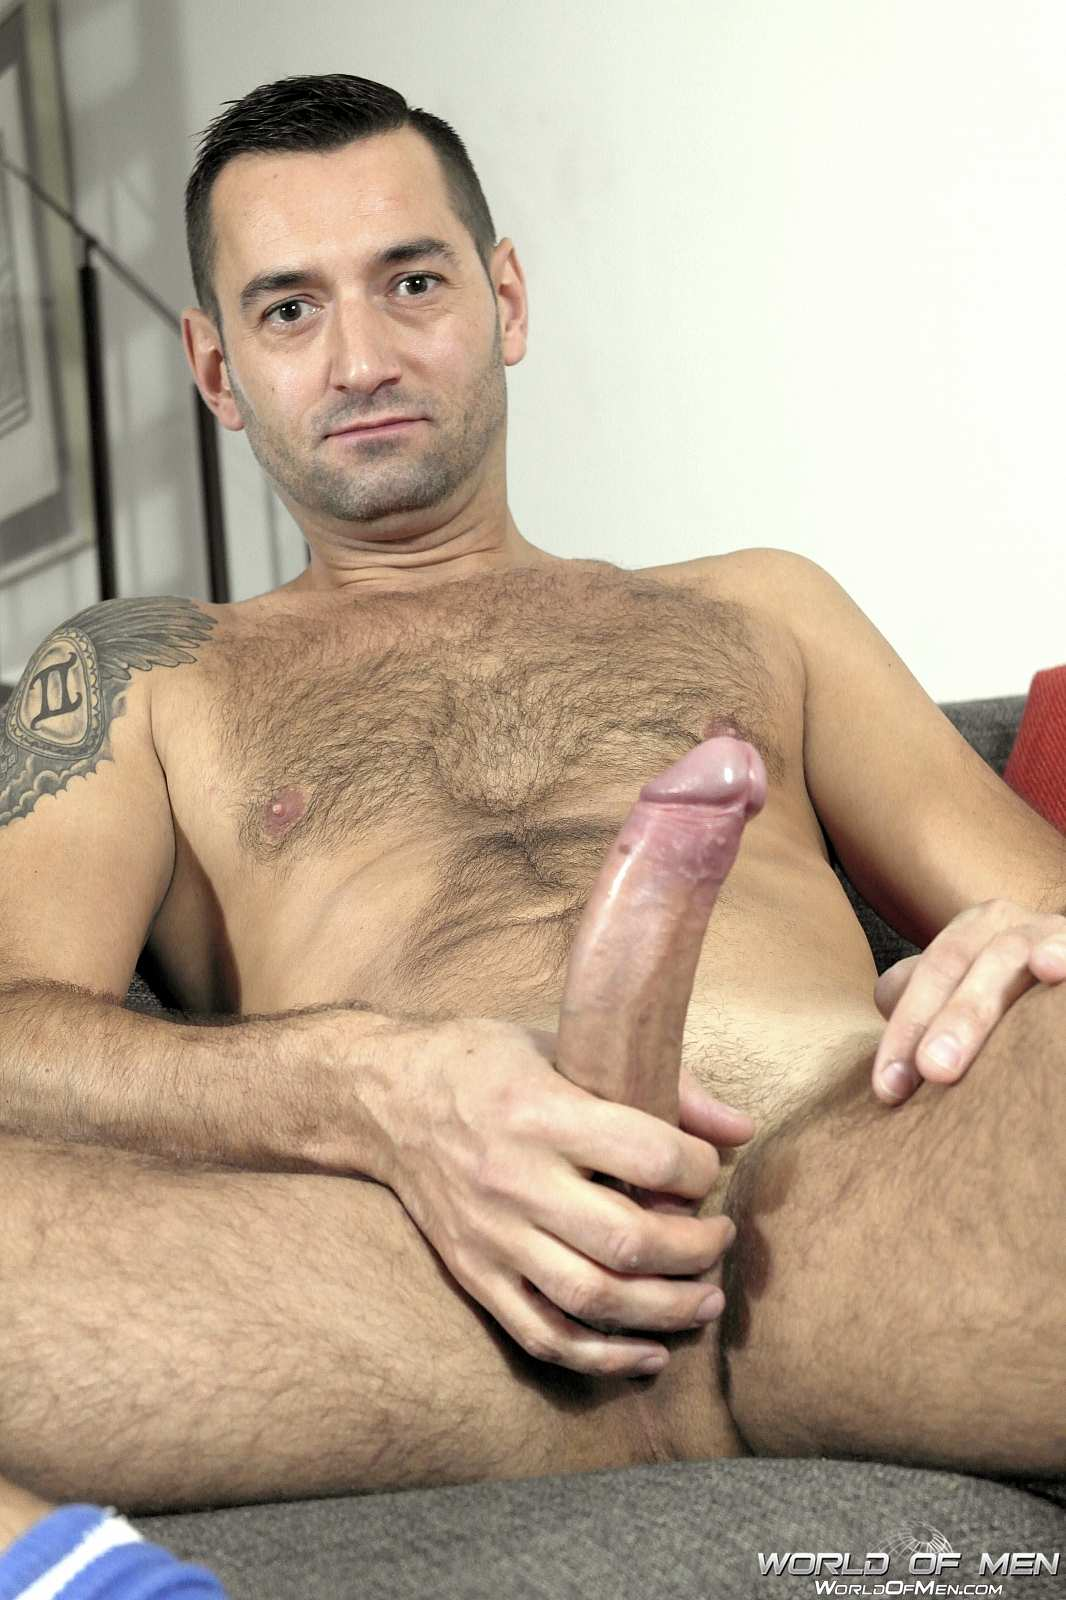 Nice stud gobbling up hot cock